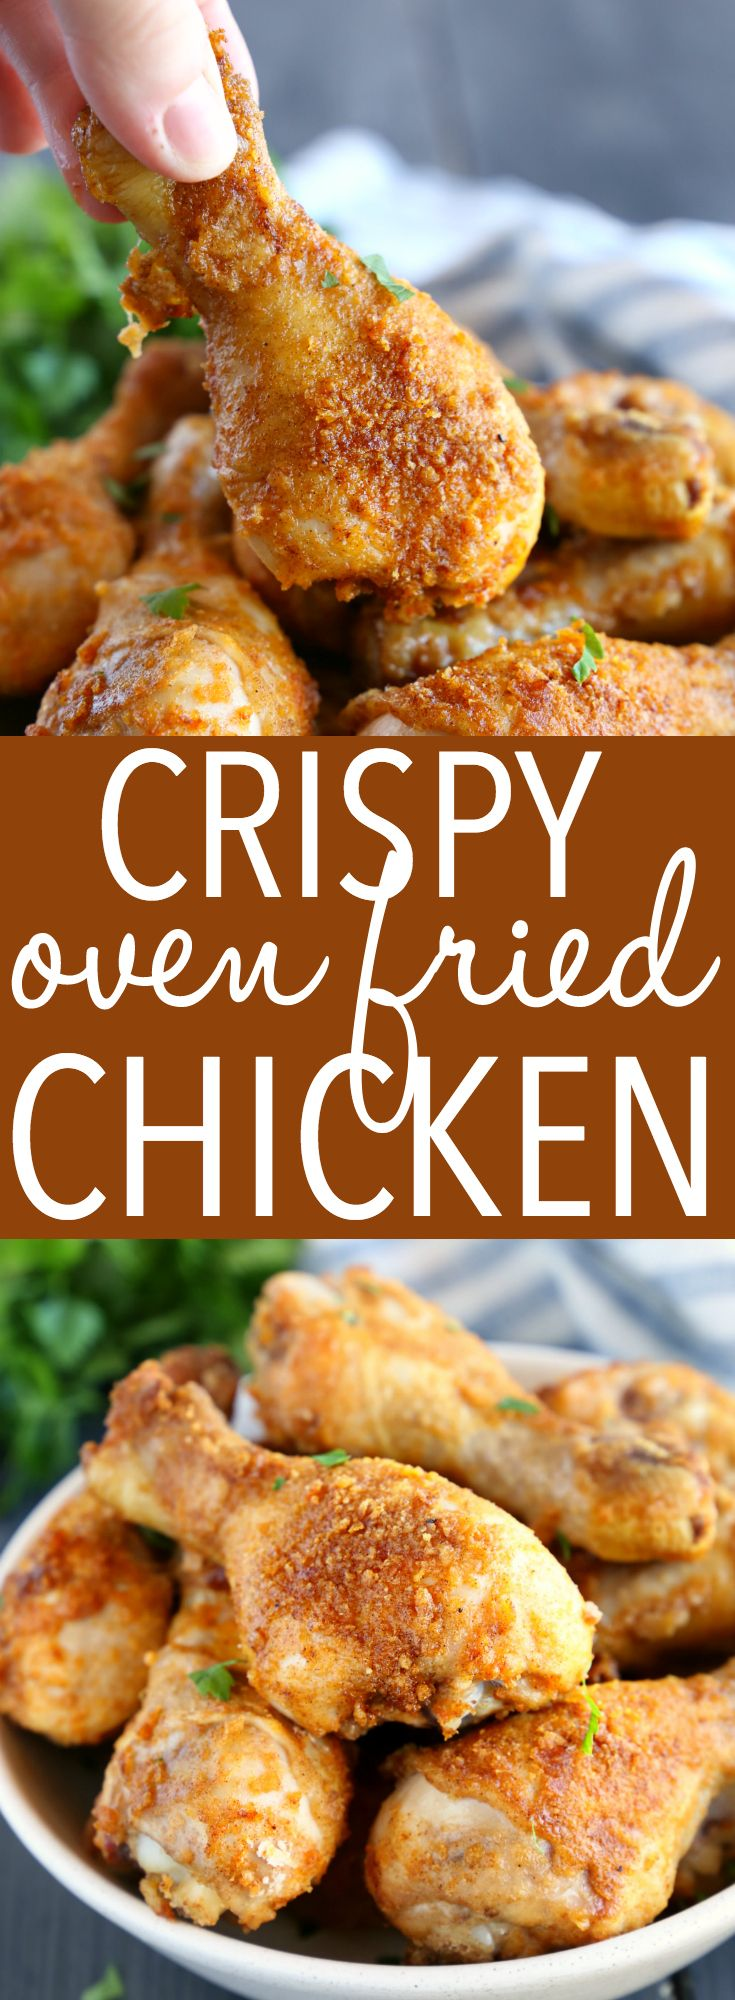 Crispy Oven Fried Chicken | Posted By: DebbieNet.com